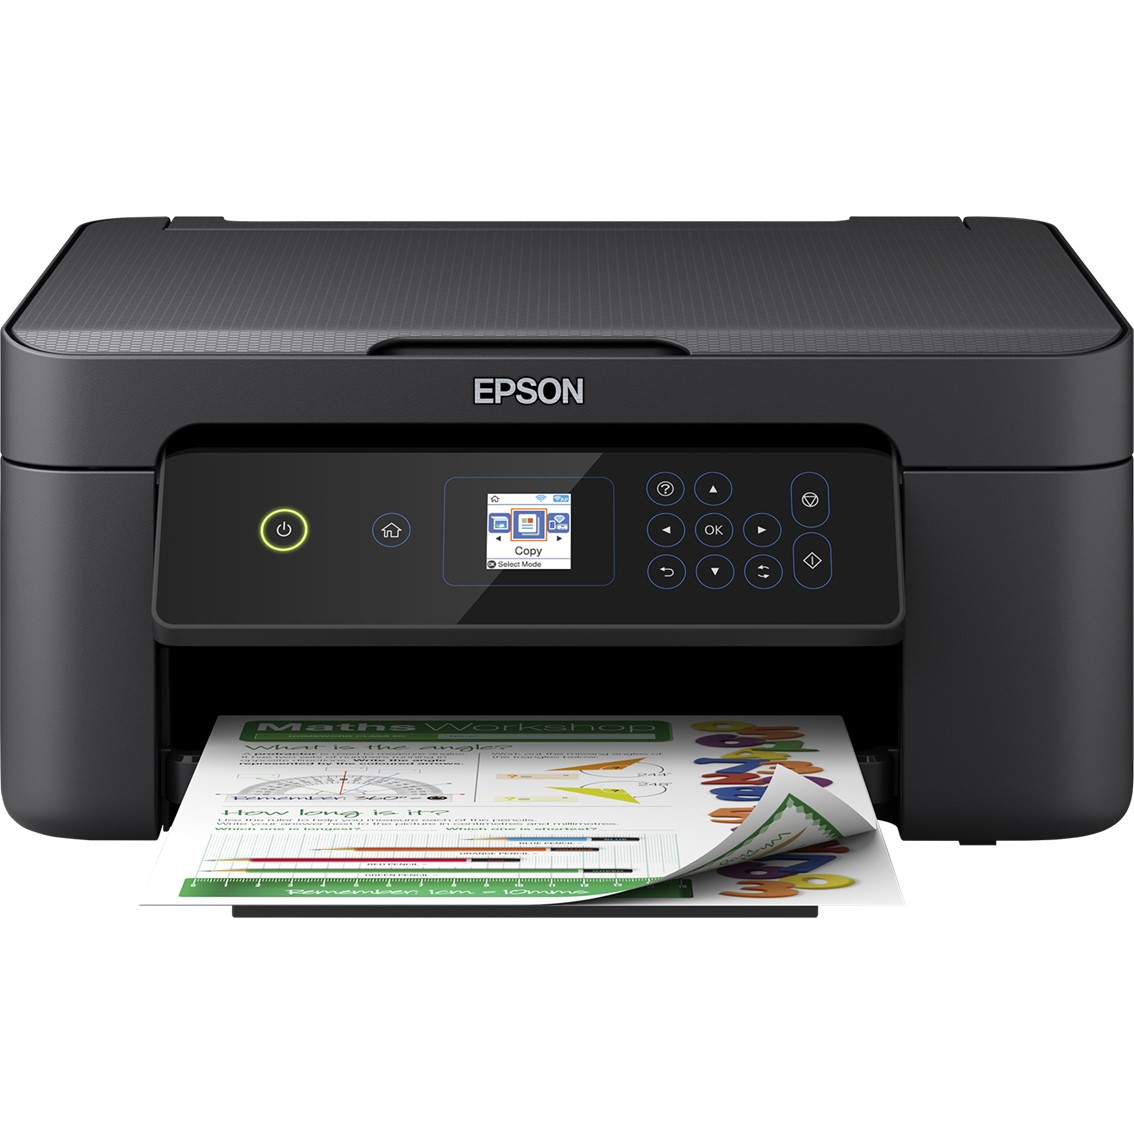 Multifuncion Epson Inyeccion Color Expression Home Xp-3105 A4/ 33ppm/ Usb/ Wifi/ Wifi Direct/ Lcd/ Duplex Impresion 0.0